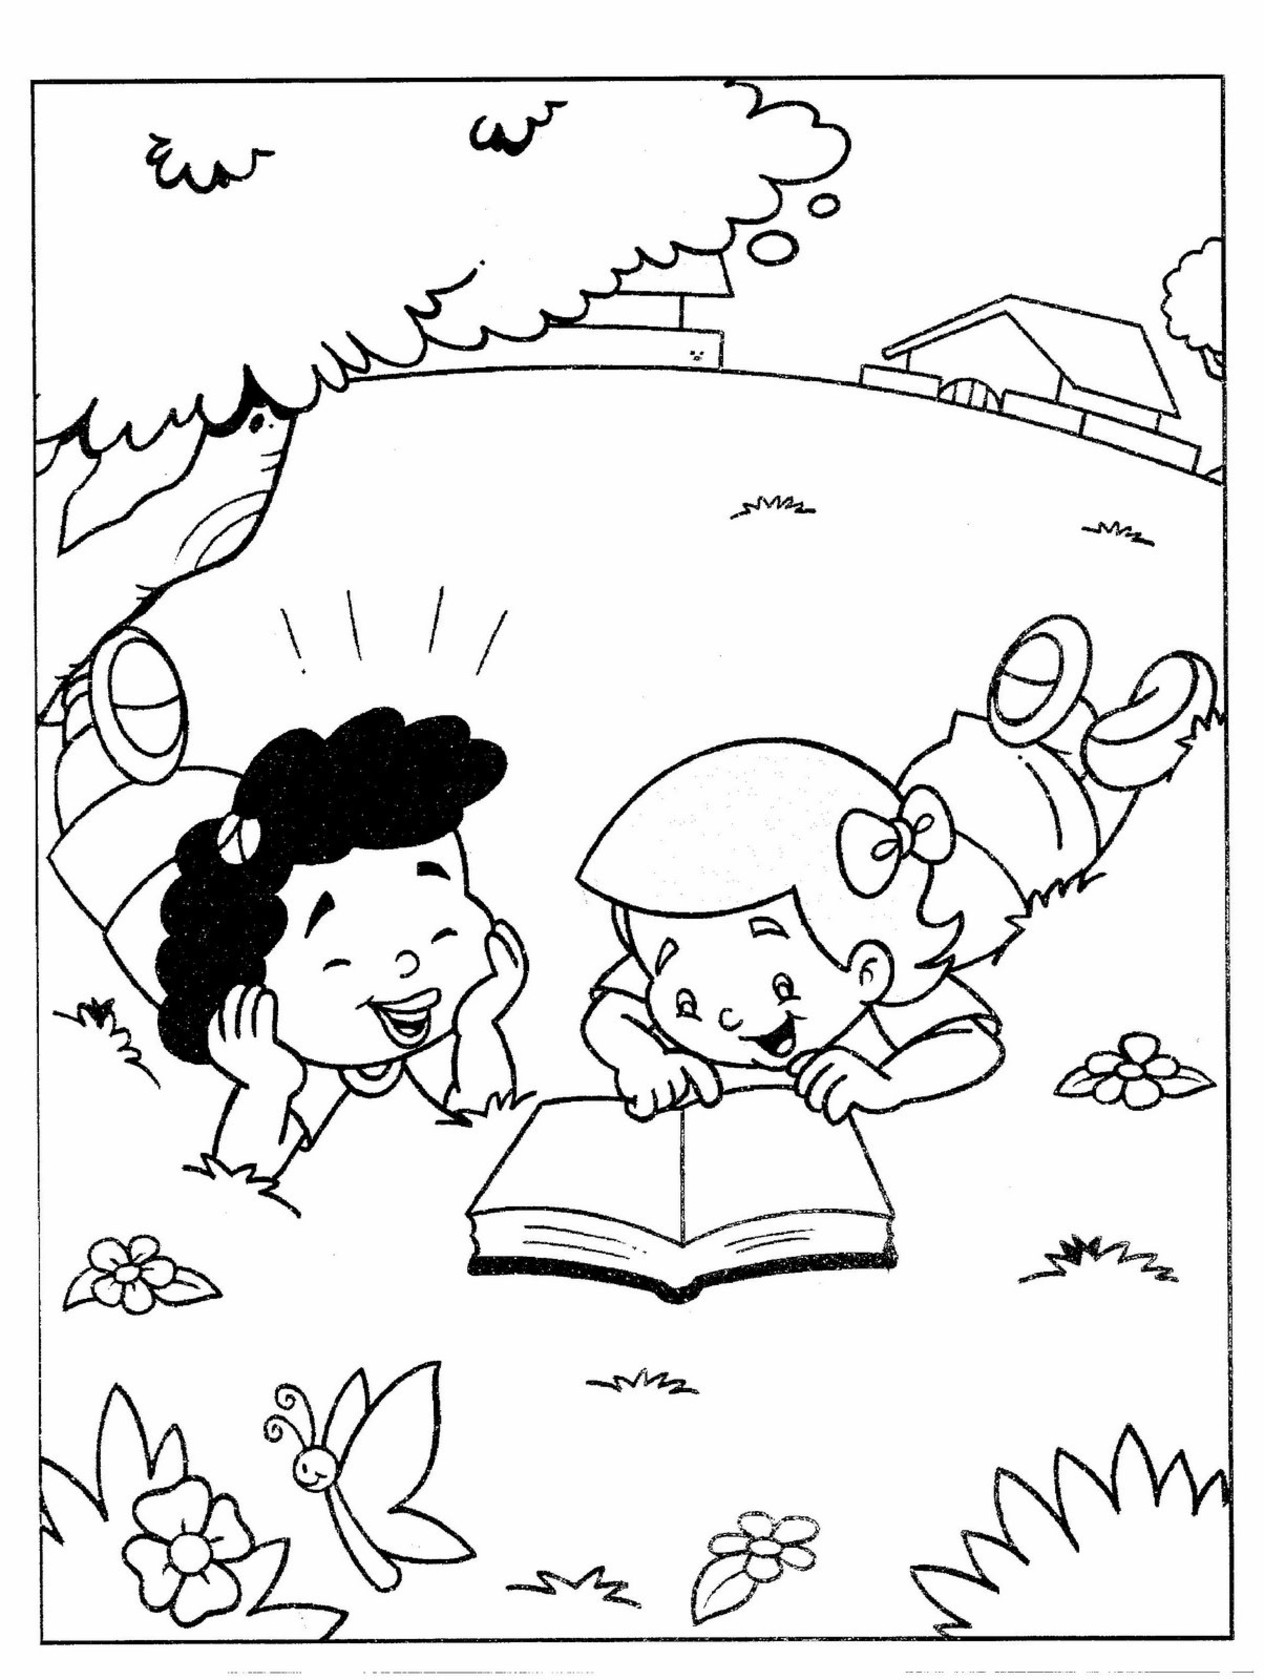 christian western coloring pages - photo#43